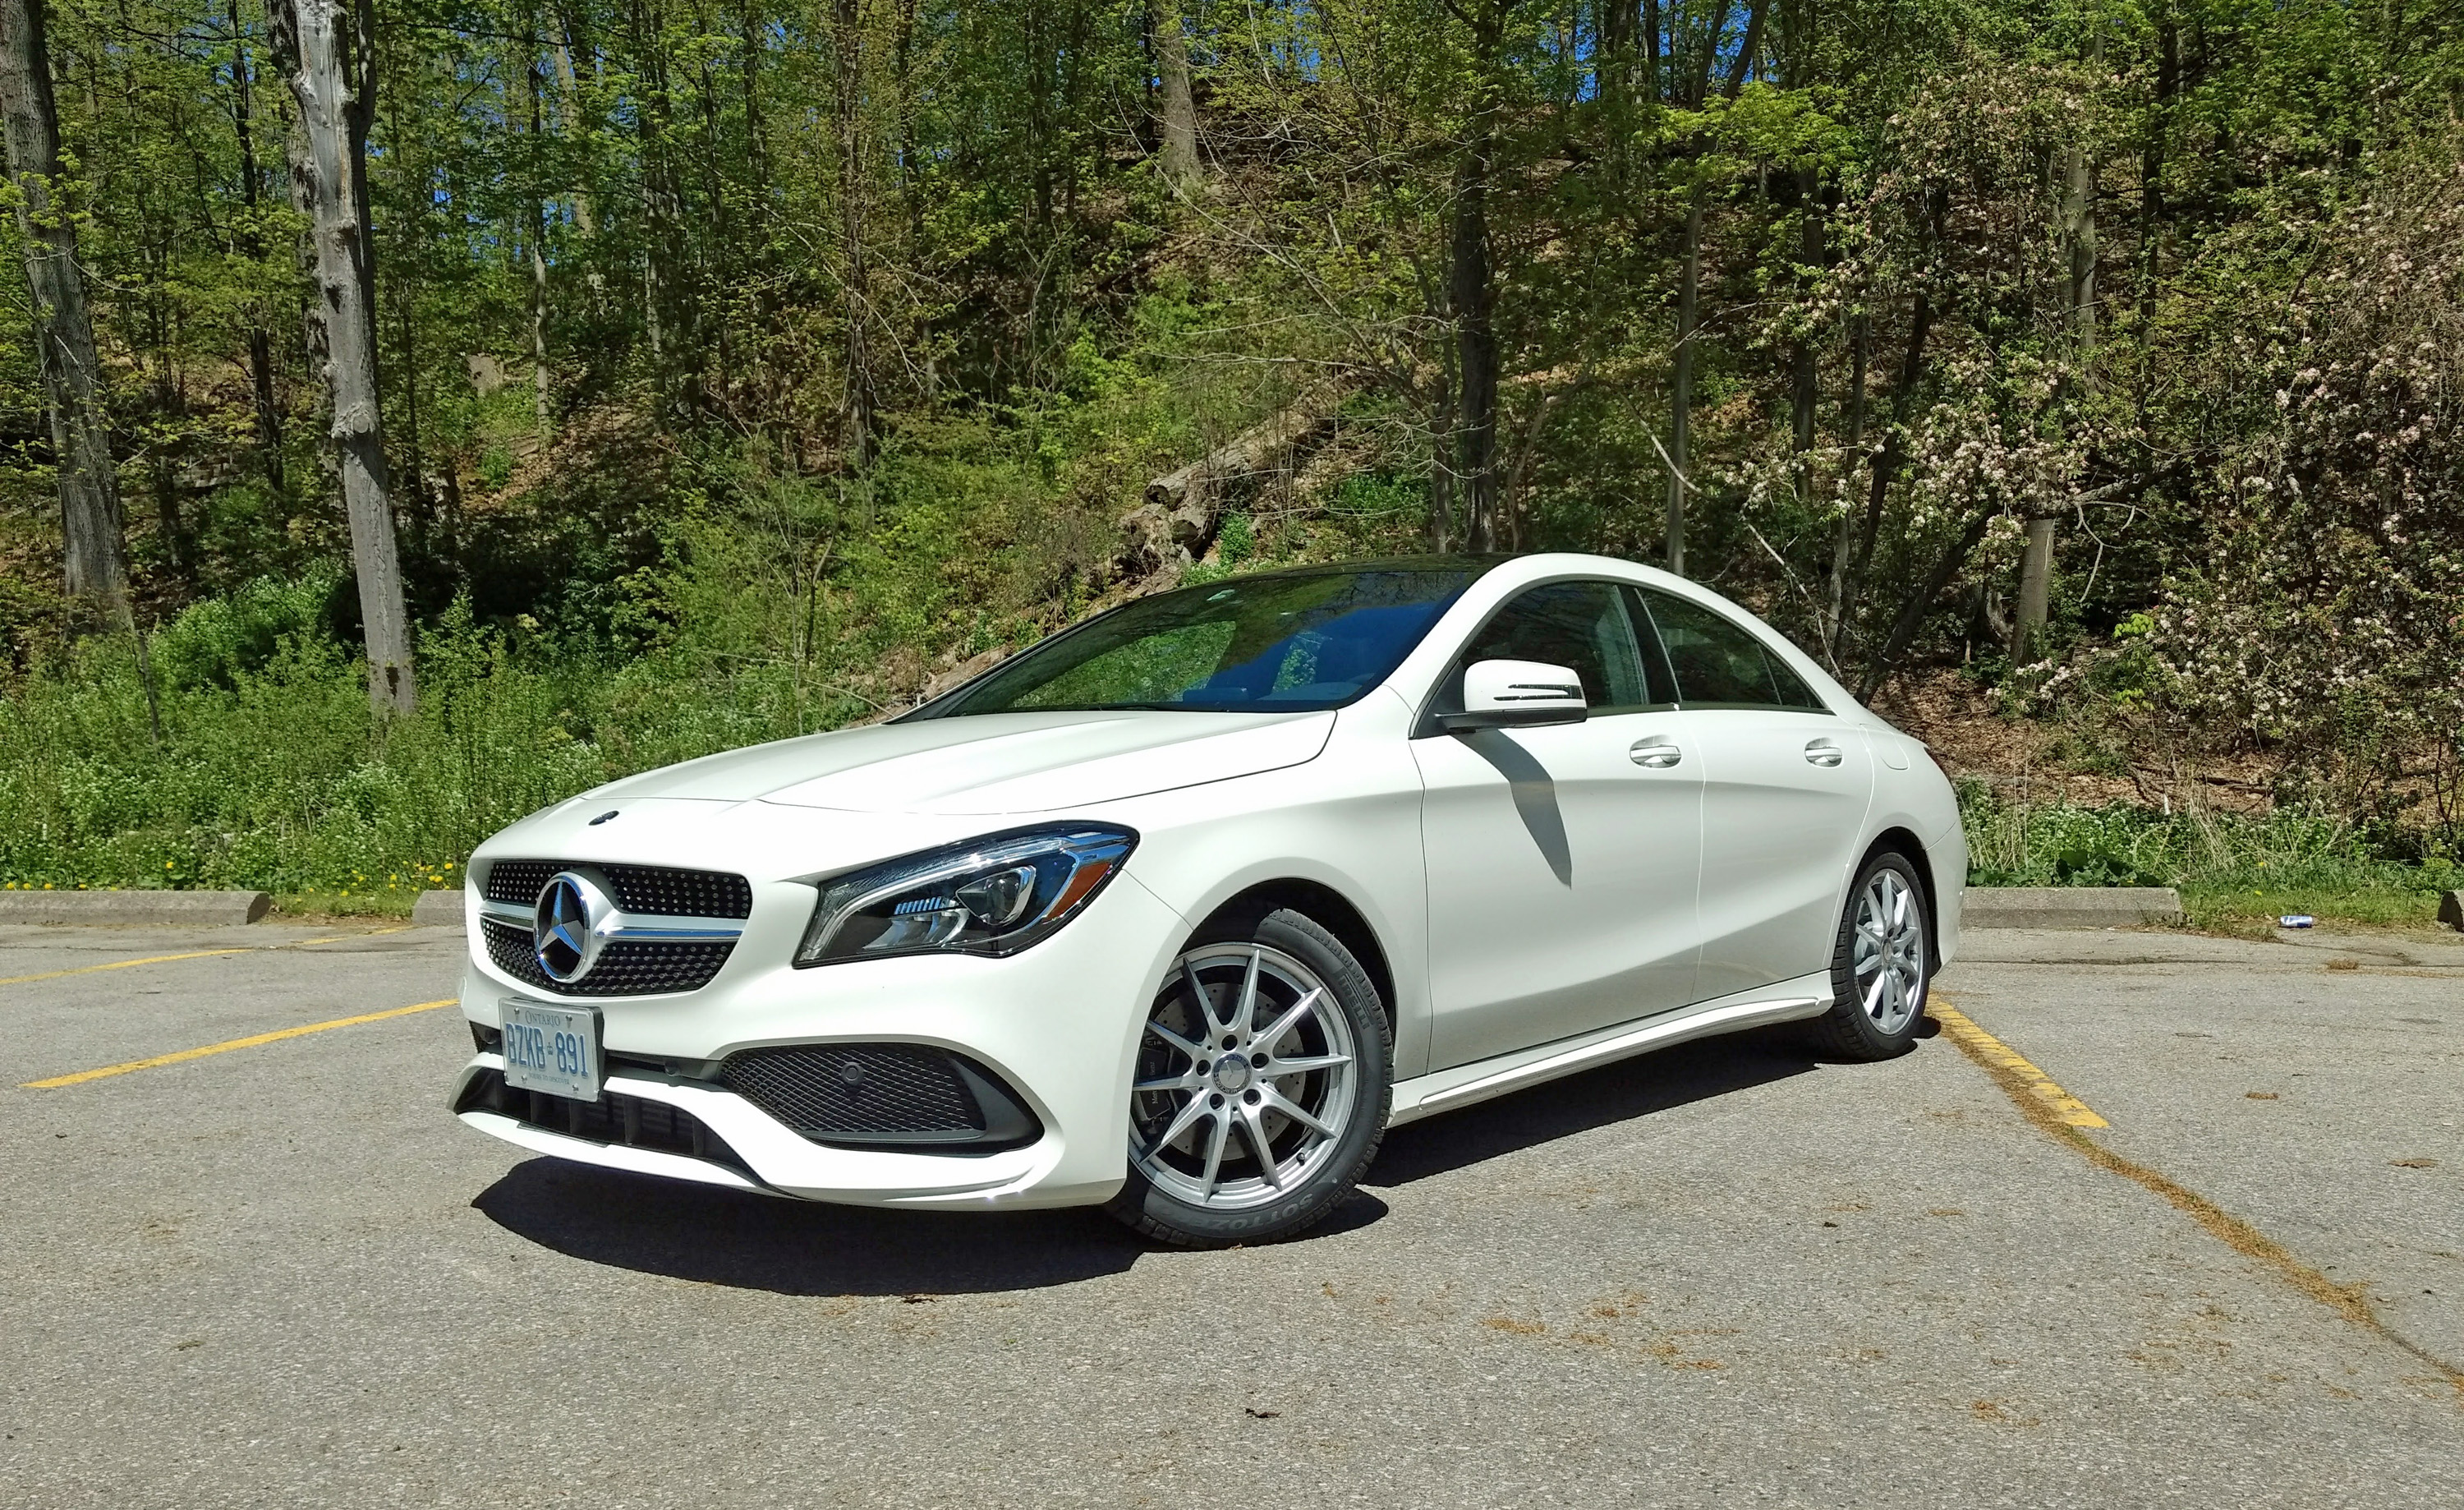 Volvo Slc >> 2017 Mercedes-Benz CLA 250 4Matic Review - AutoGuide.com